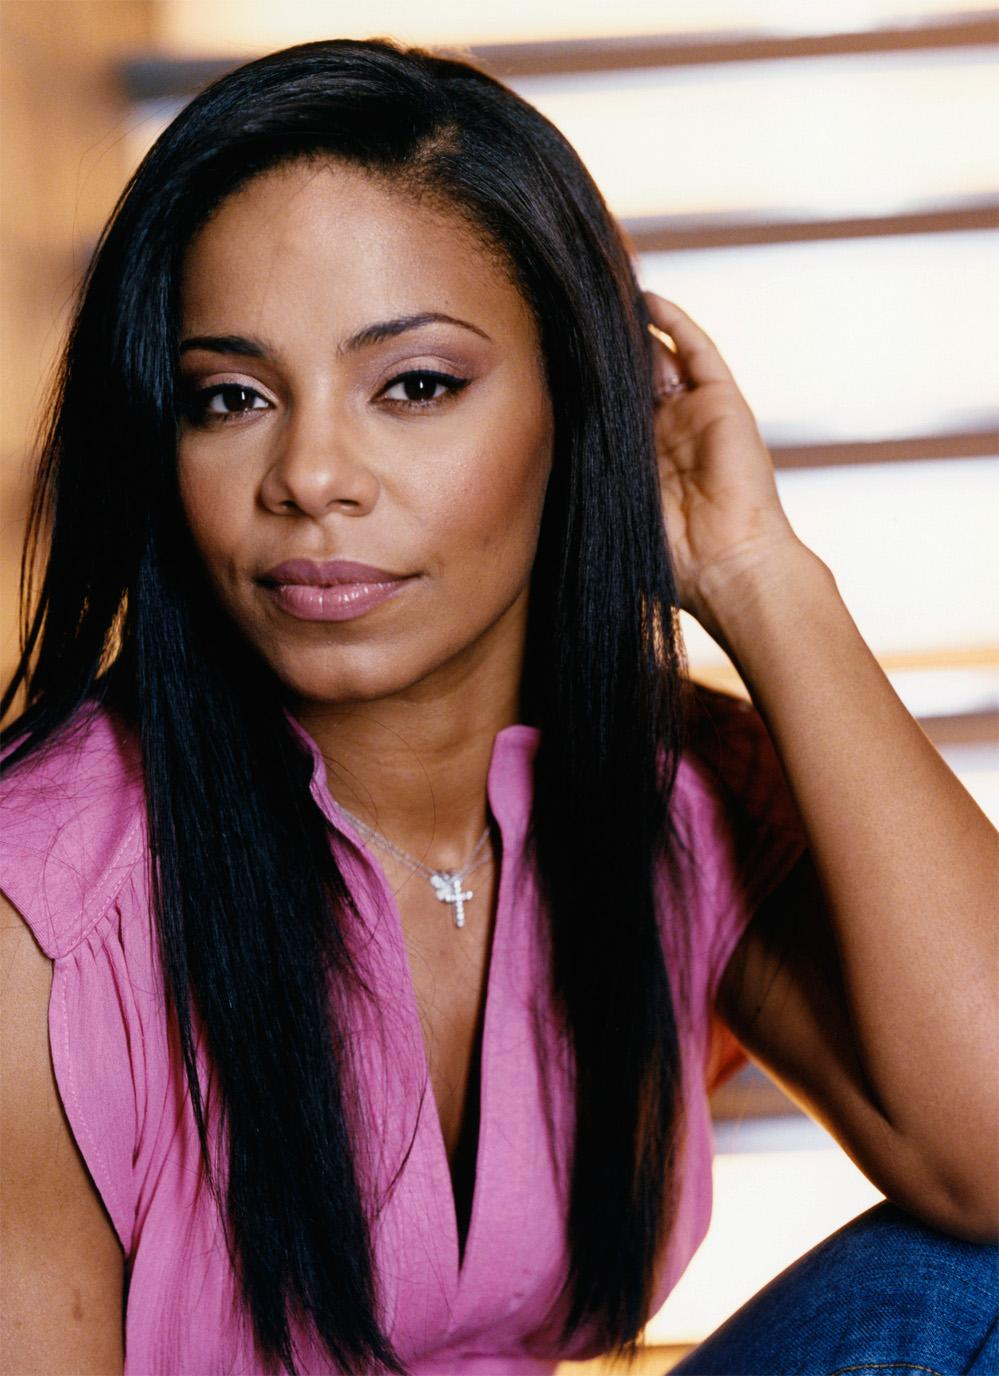 Hair extension hairstyles and information sanaa lathan celebrity sanaa lathan celebrity hair weave hairstyles pmusecretfo Image collections